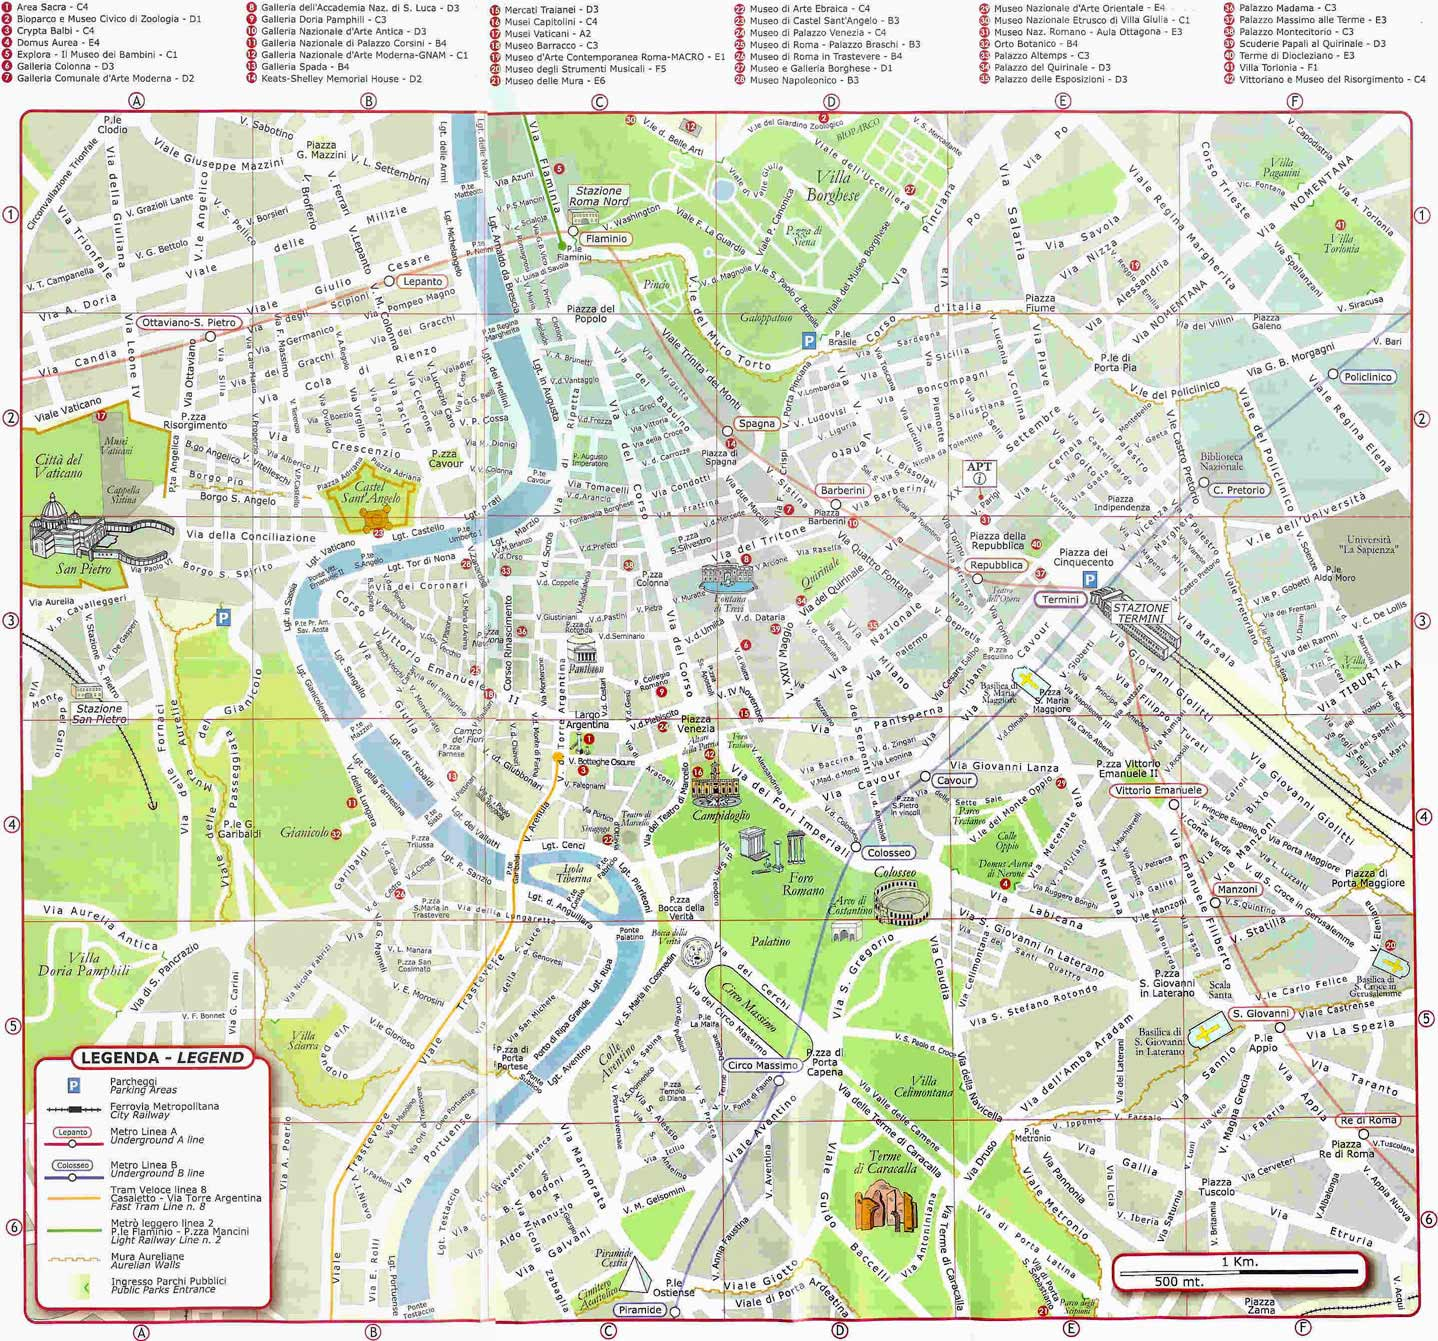 Maps of Rome Italy Roma Italia Maps Goparoo – Rome Map Of Tourist Attractions